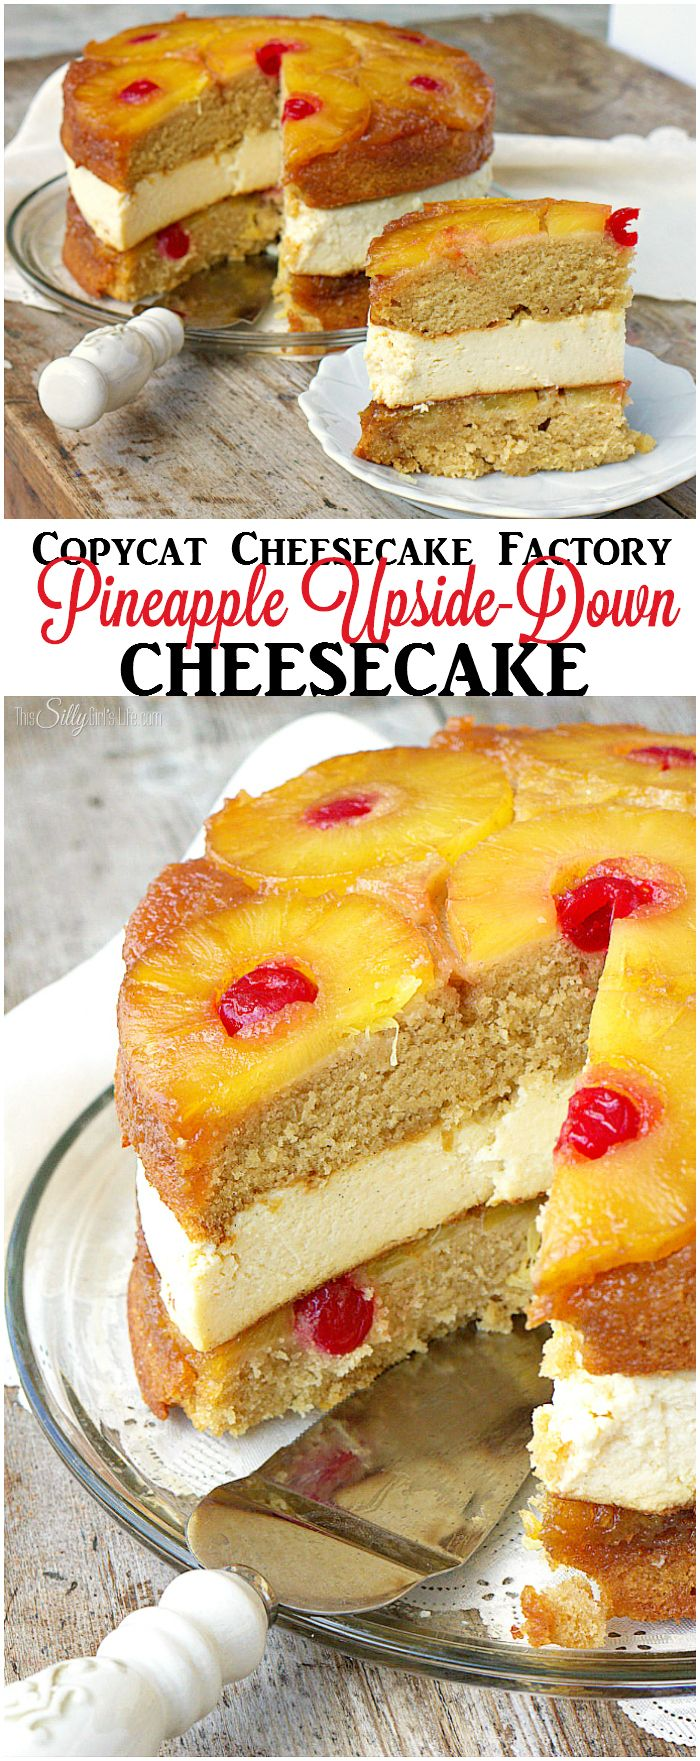 Copycat Cheesecake Factory Pineapple Upside-Down Cheesecake, two layers of buttery pineapple upside-down cake stuffed with pineapple cheesecake, just like the restaurant... but homemade! - ThisSillyGirlsLife.com #CopycatCheesecakeFactory